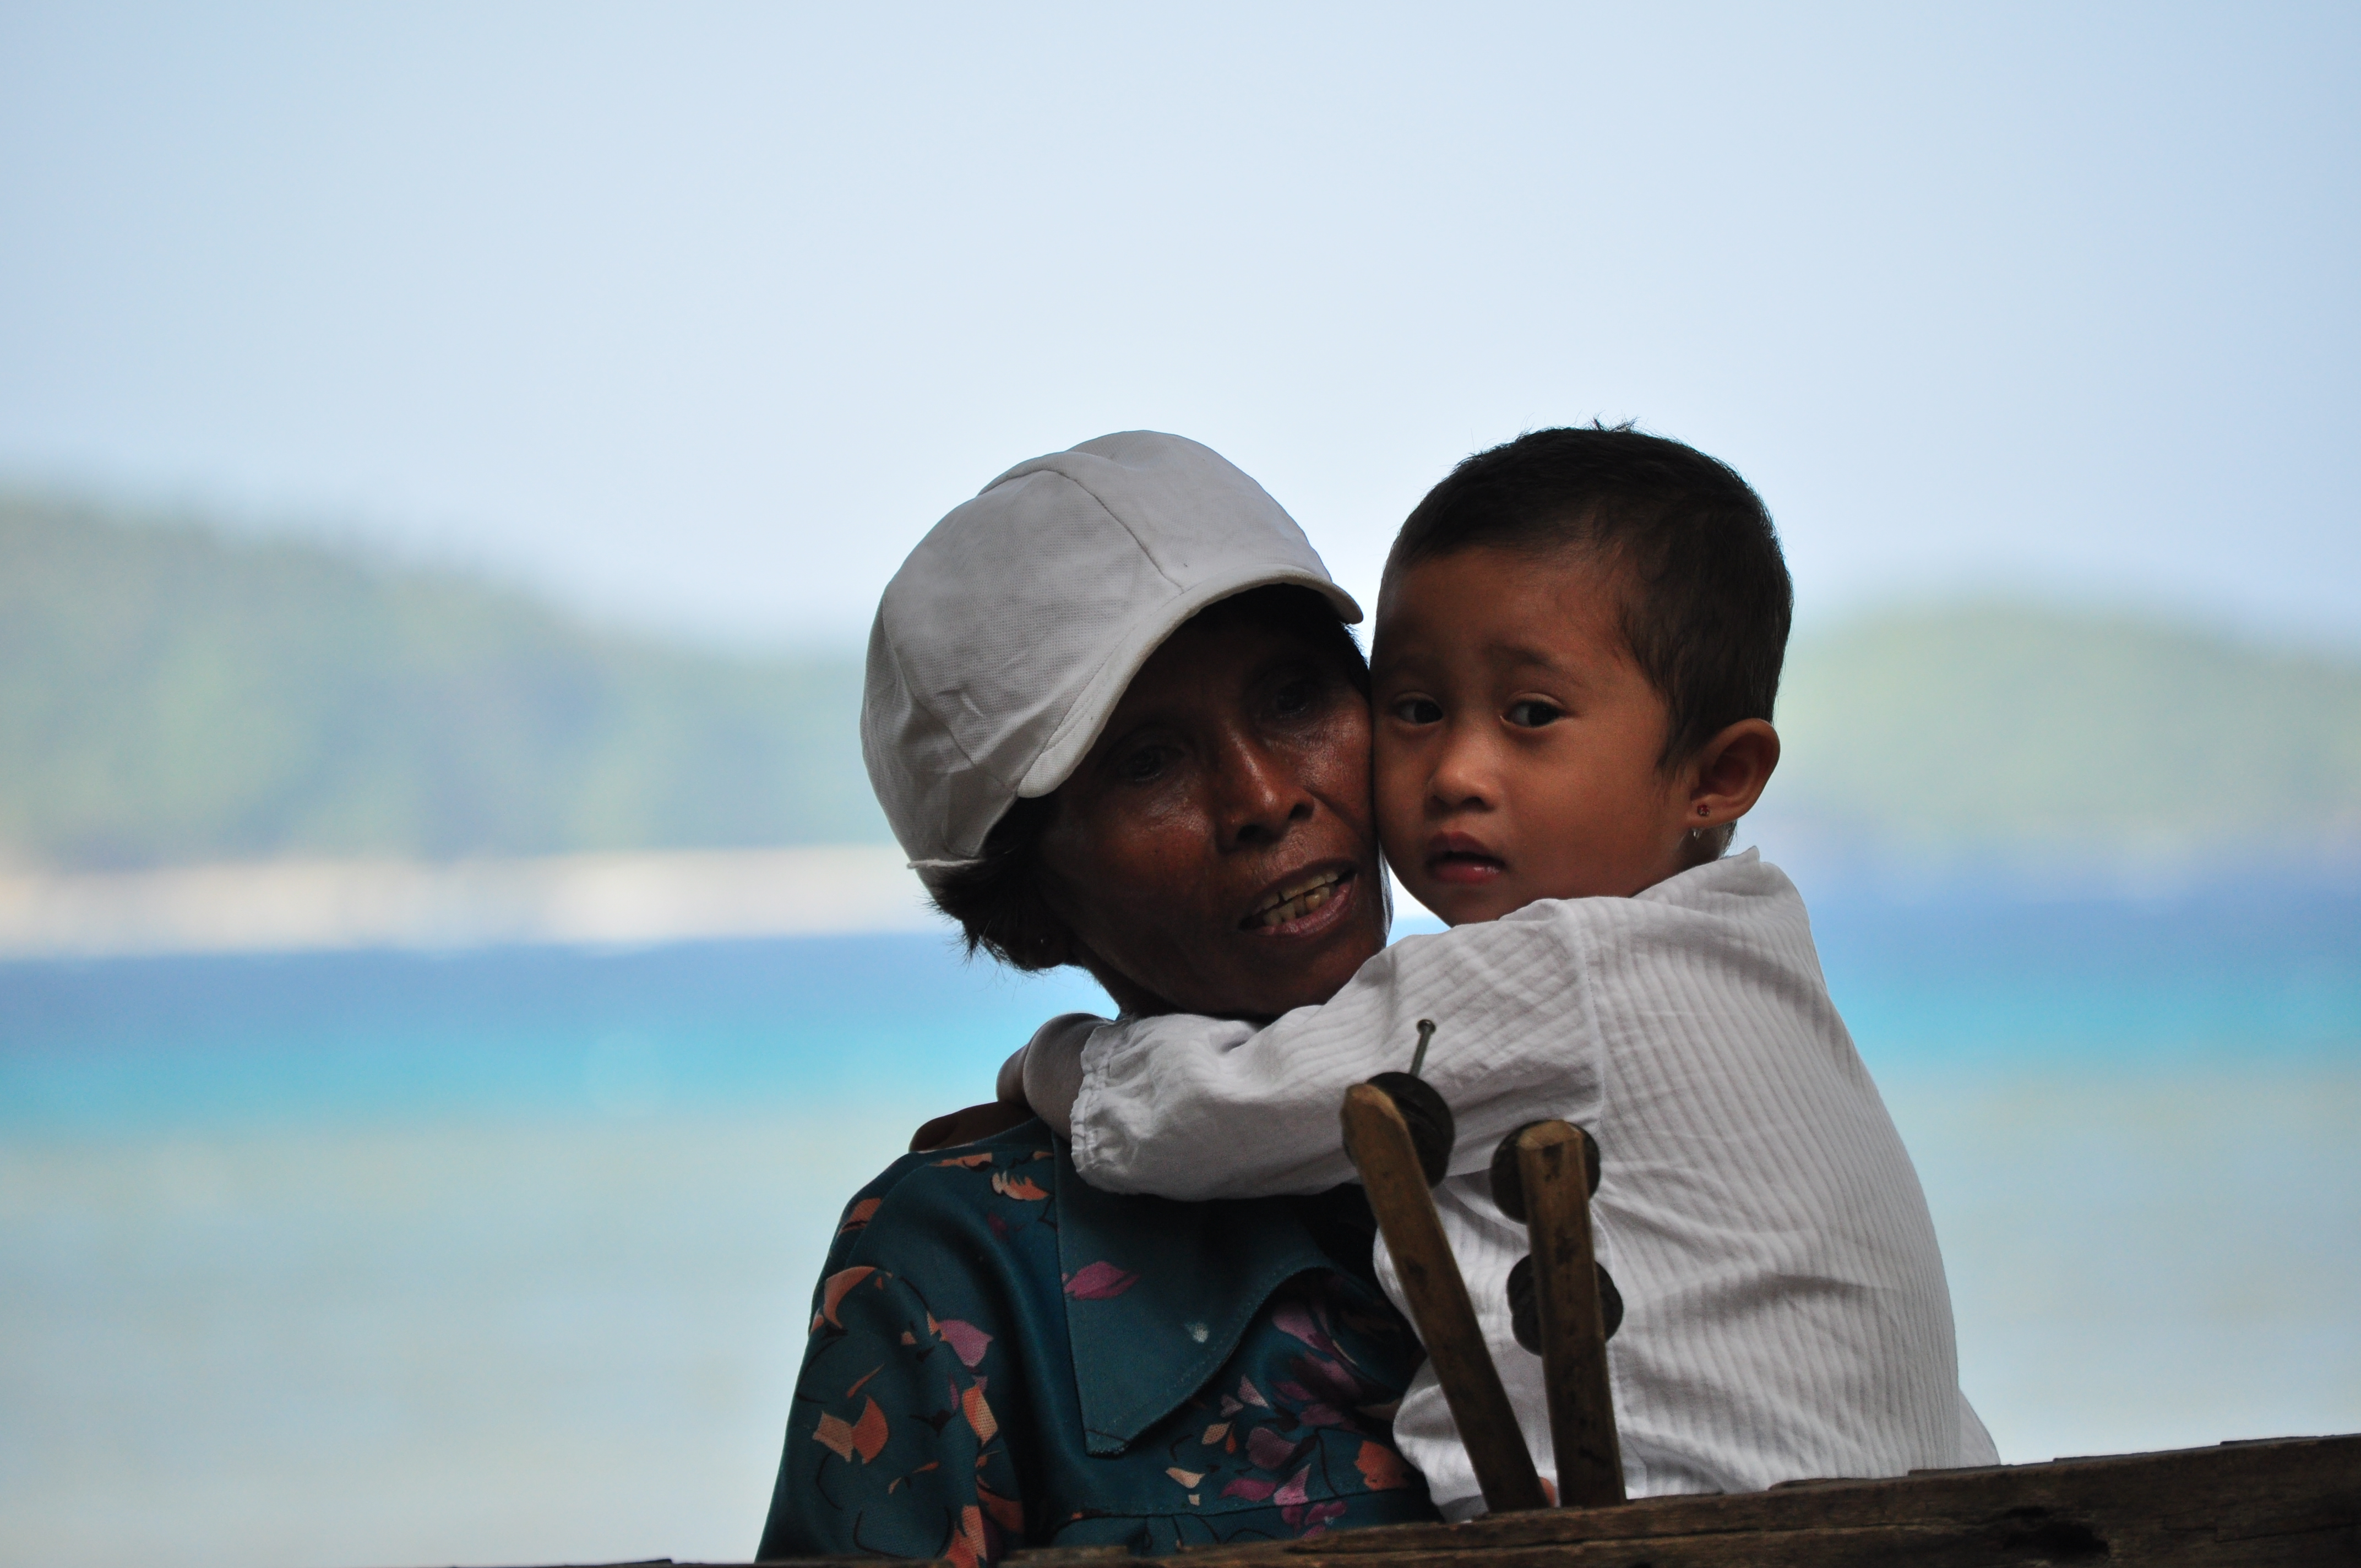 Mother and child, Boy, Child, Family, Female, HQ Photo